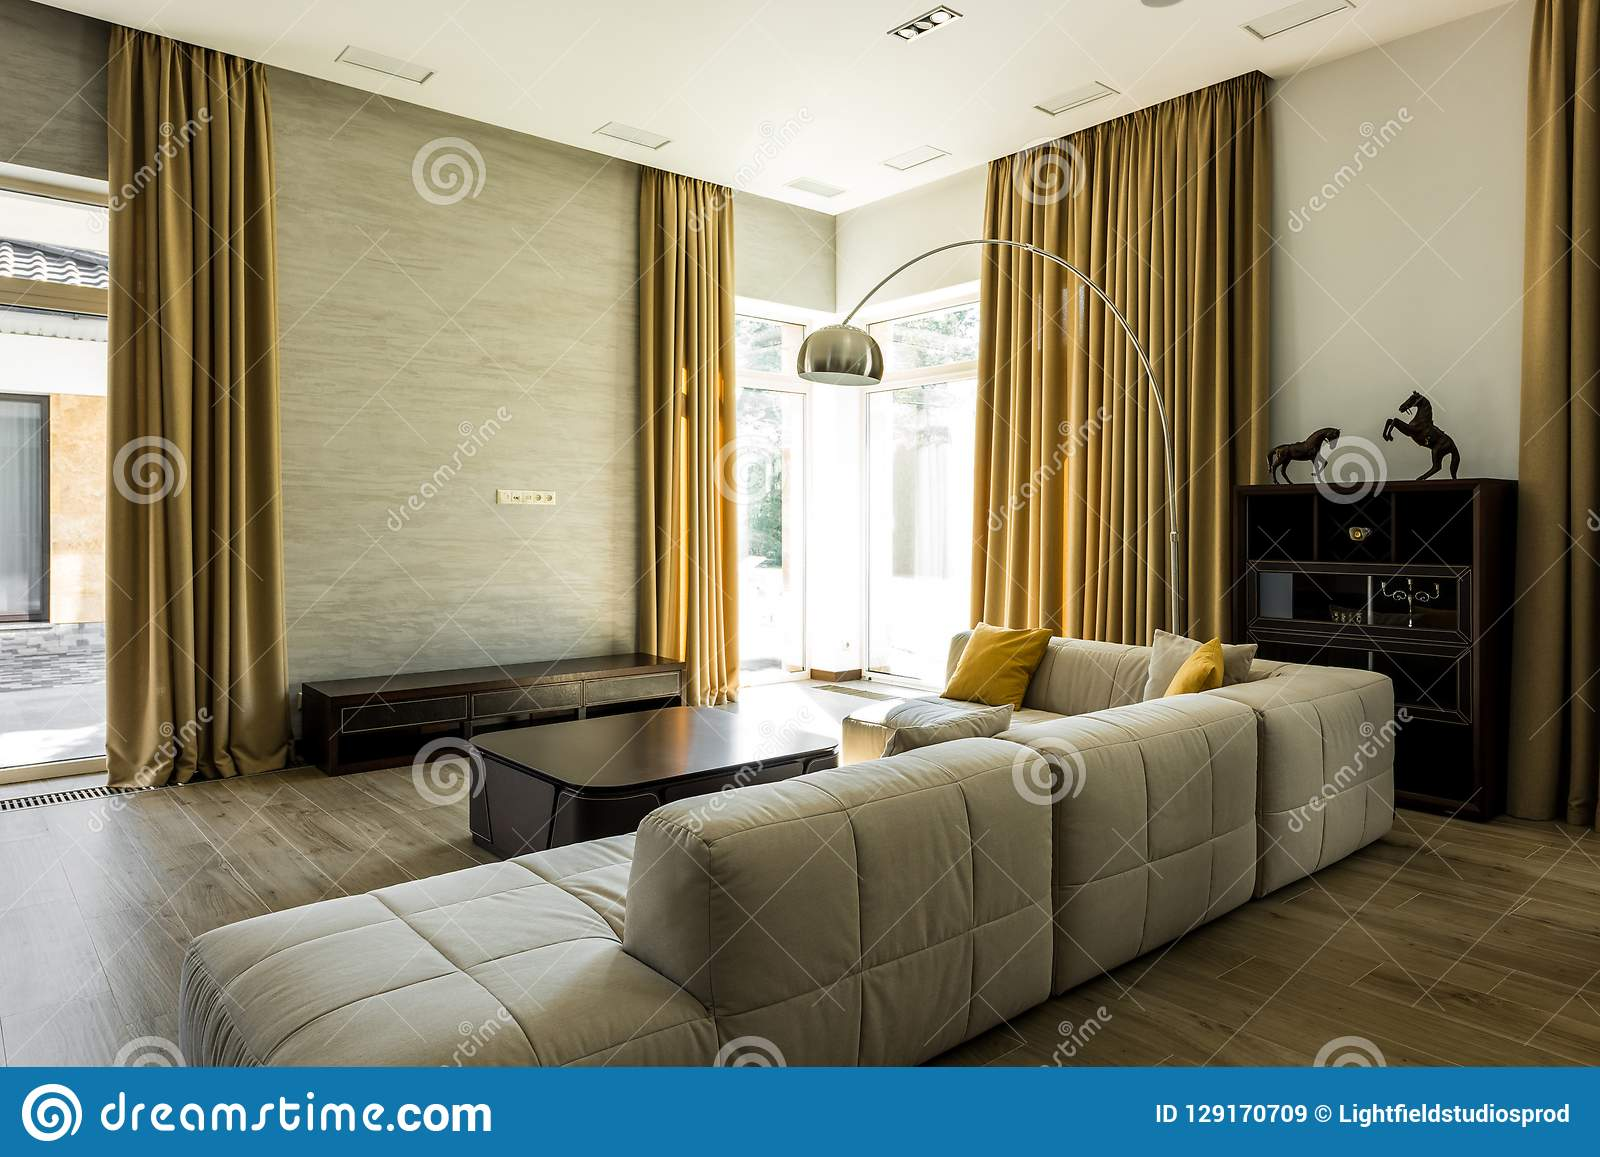 Interior Of Empty Modern Living Room With Sofa And Big Windows Stock Image Image Of Curtains Decorative 129170709